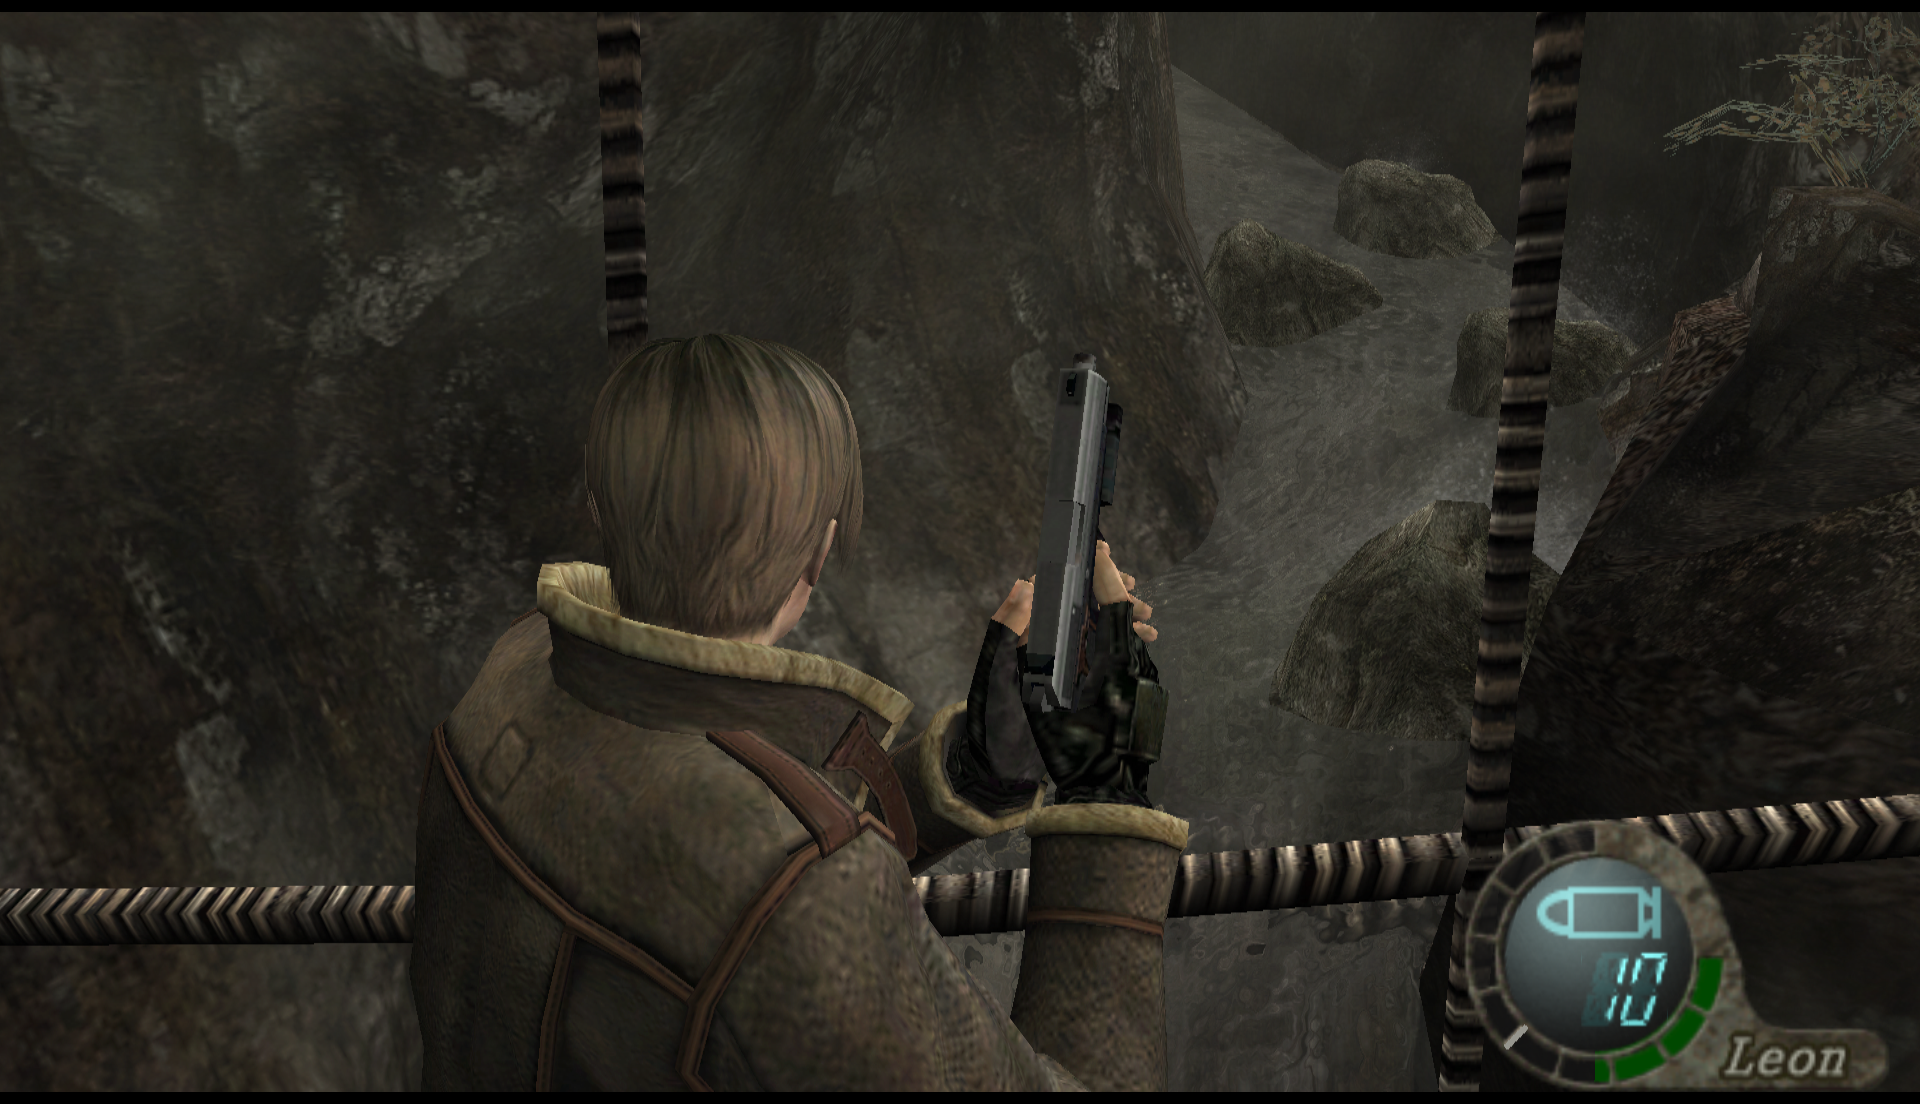 Emulator Issues #9936: Black Stripes on water - RE4